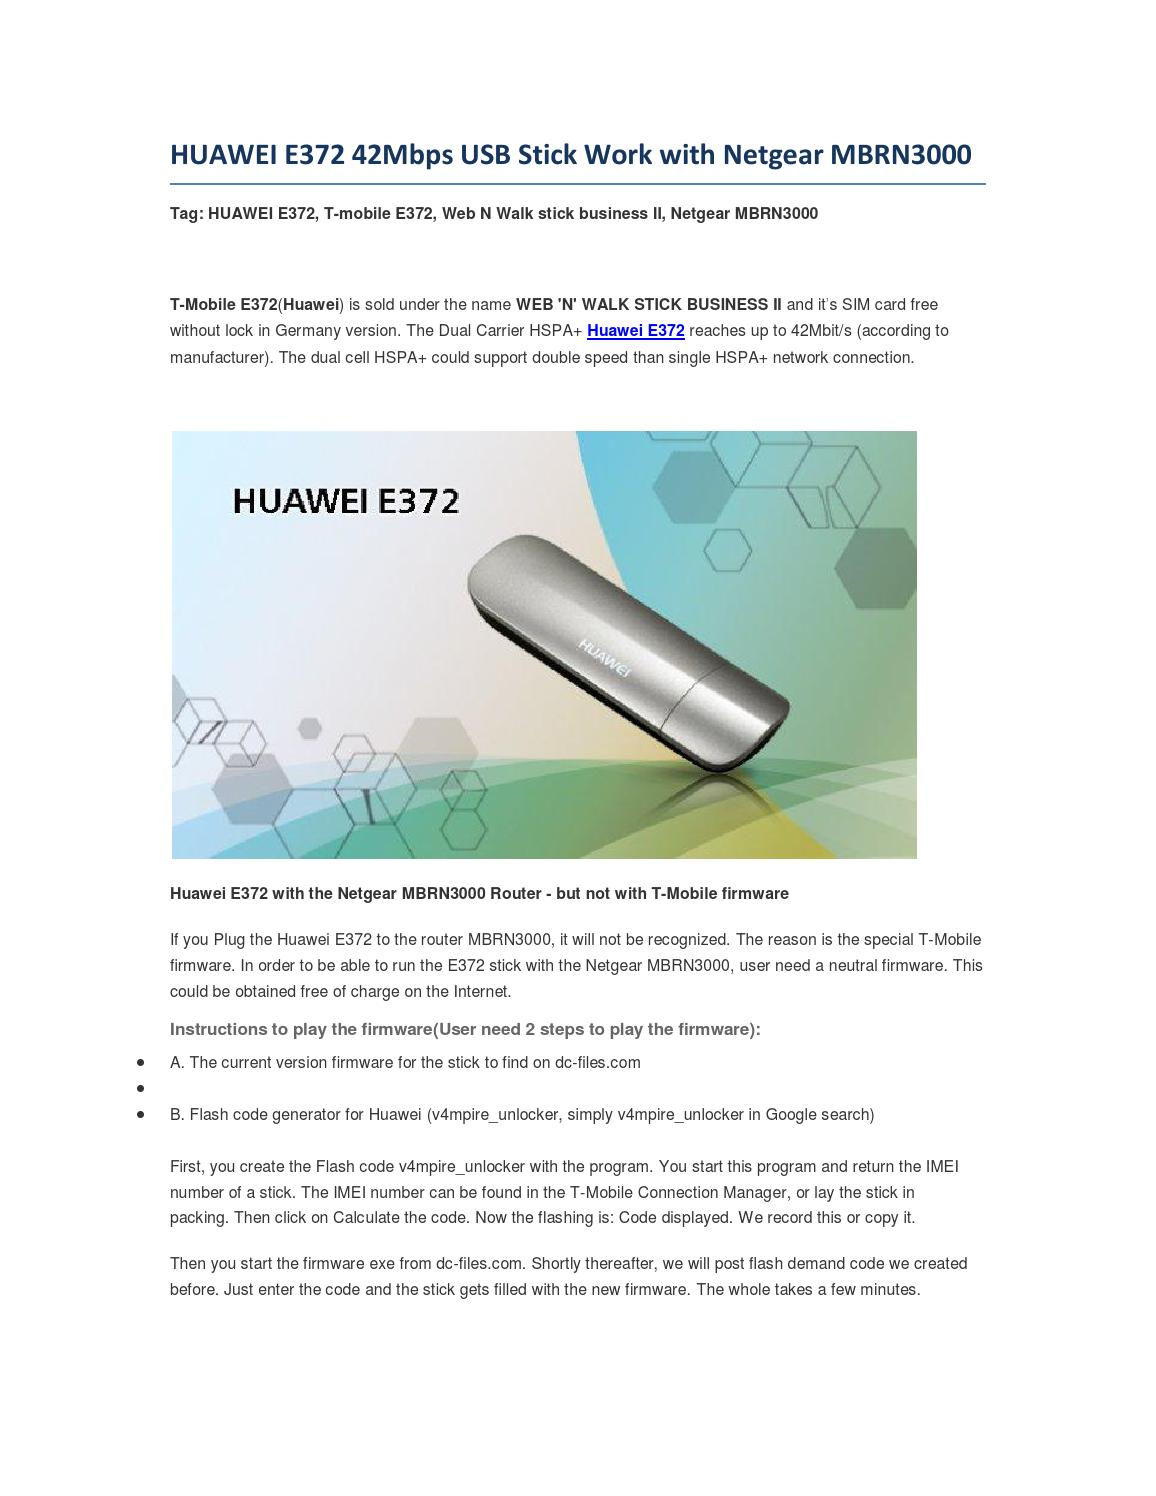 HUAWEI E372 42Mbps USB Stick Work with Netgear MBRN3000 by Lte Mall